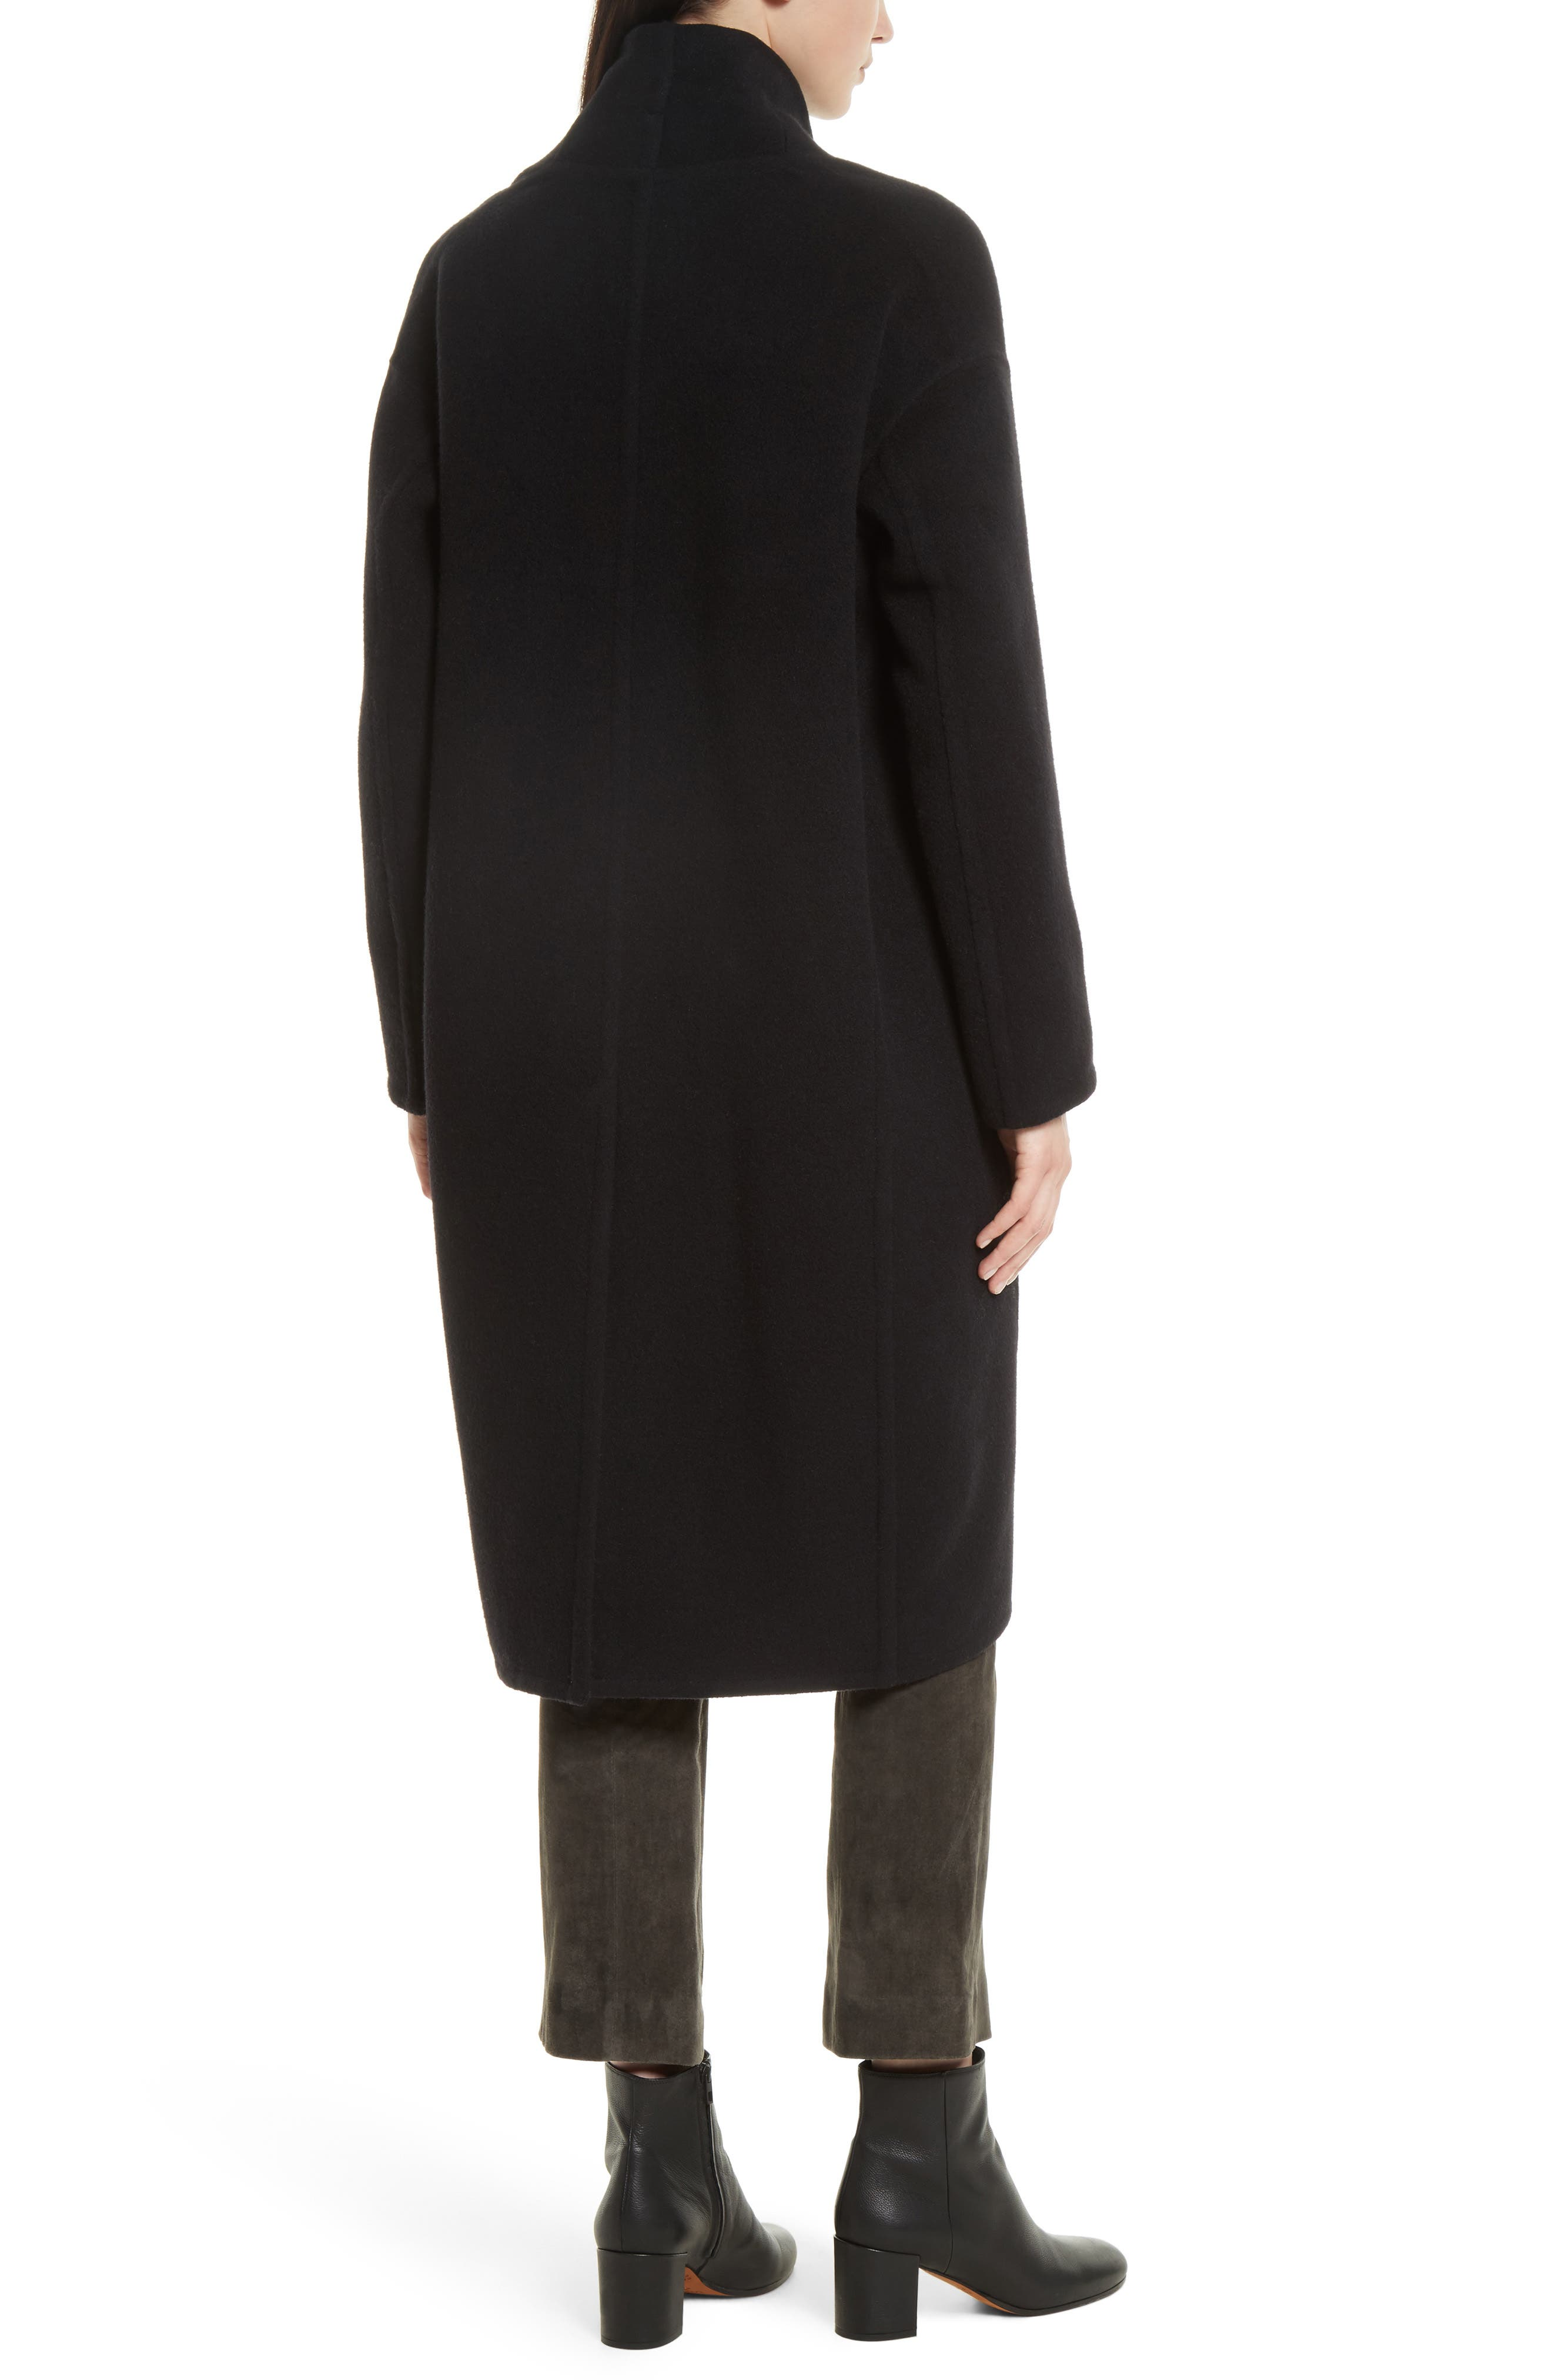 VINCE,                             High Collar Long Wool Blend Coat,                             Alternate thumbnail 2, color,                             001